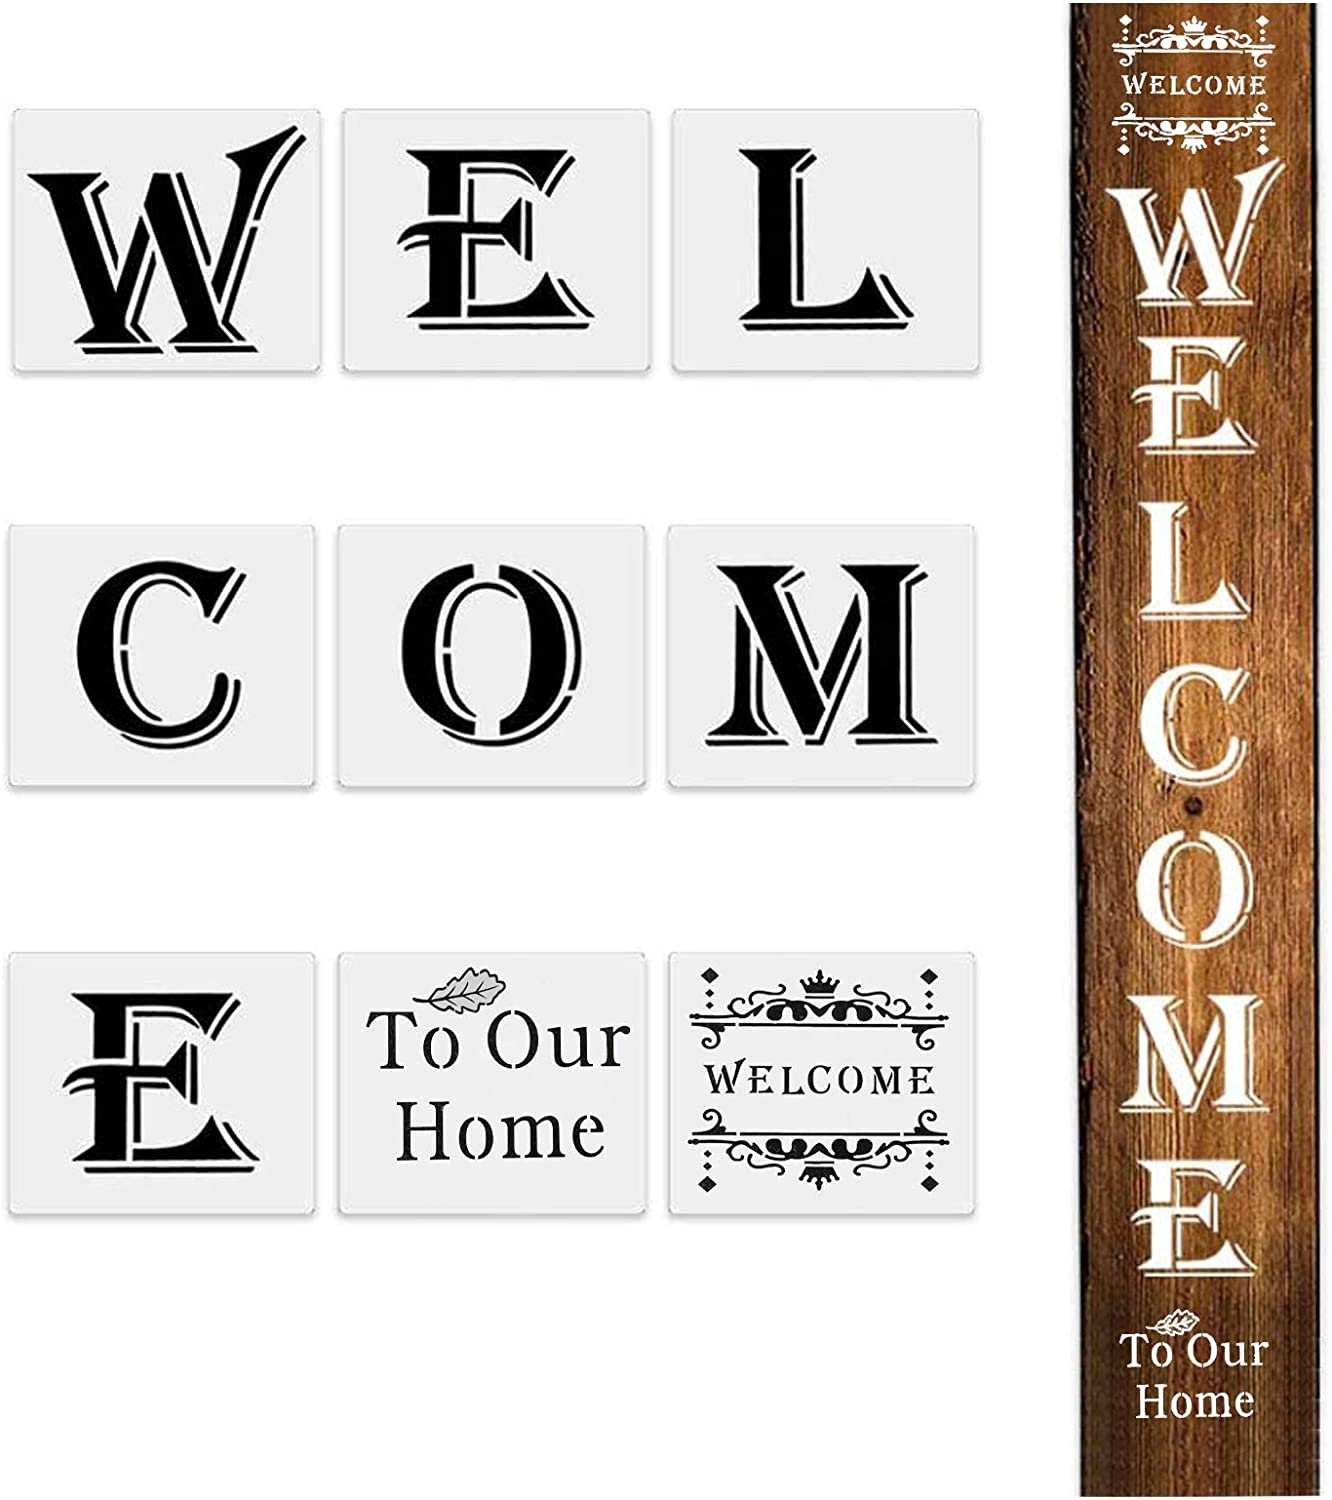 Welcome Home Stencil - 9 Pack, Reusable Large Vertical Home Wall Sign Stencils Templates for Painting on Wood, Large Seasonal Letter Stencils for Porch Signs and Front Door Outside Home Decorations